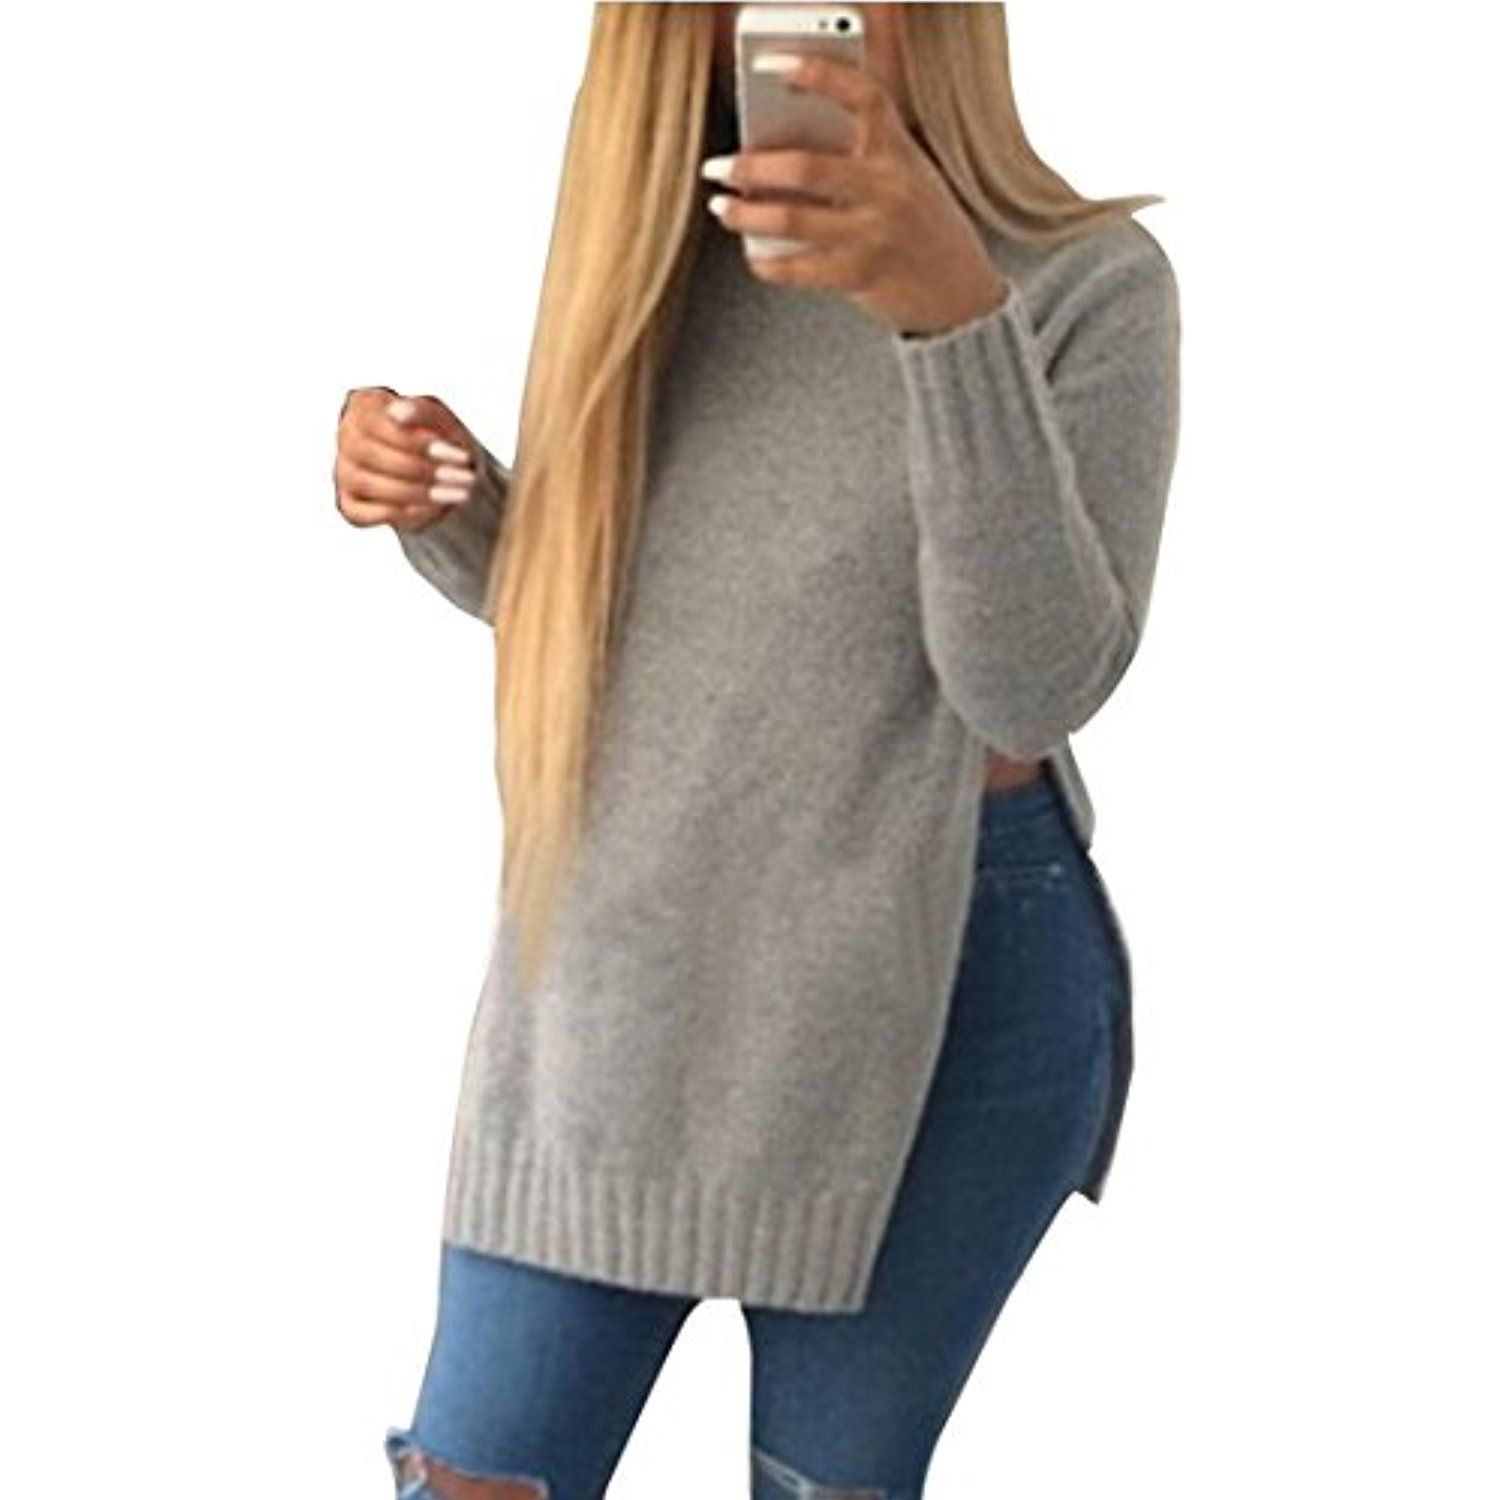 ZSN Womens Autumn Solid Side Slit Slim Fit Knit Pullover Sweater *** Want additional info? Click on the image. (This is an affiliate link and I receive a commission for the sales)